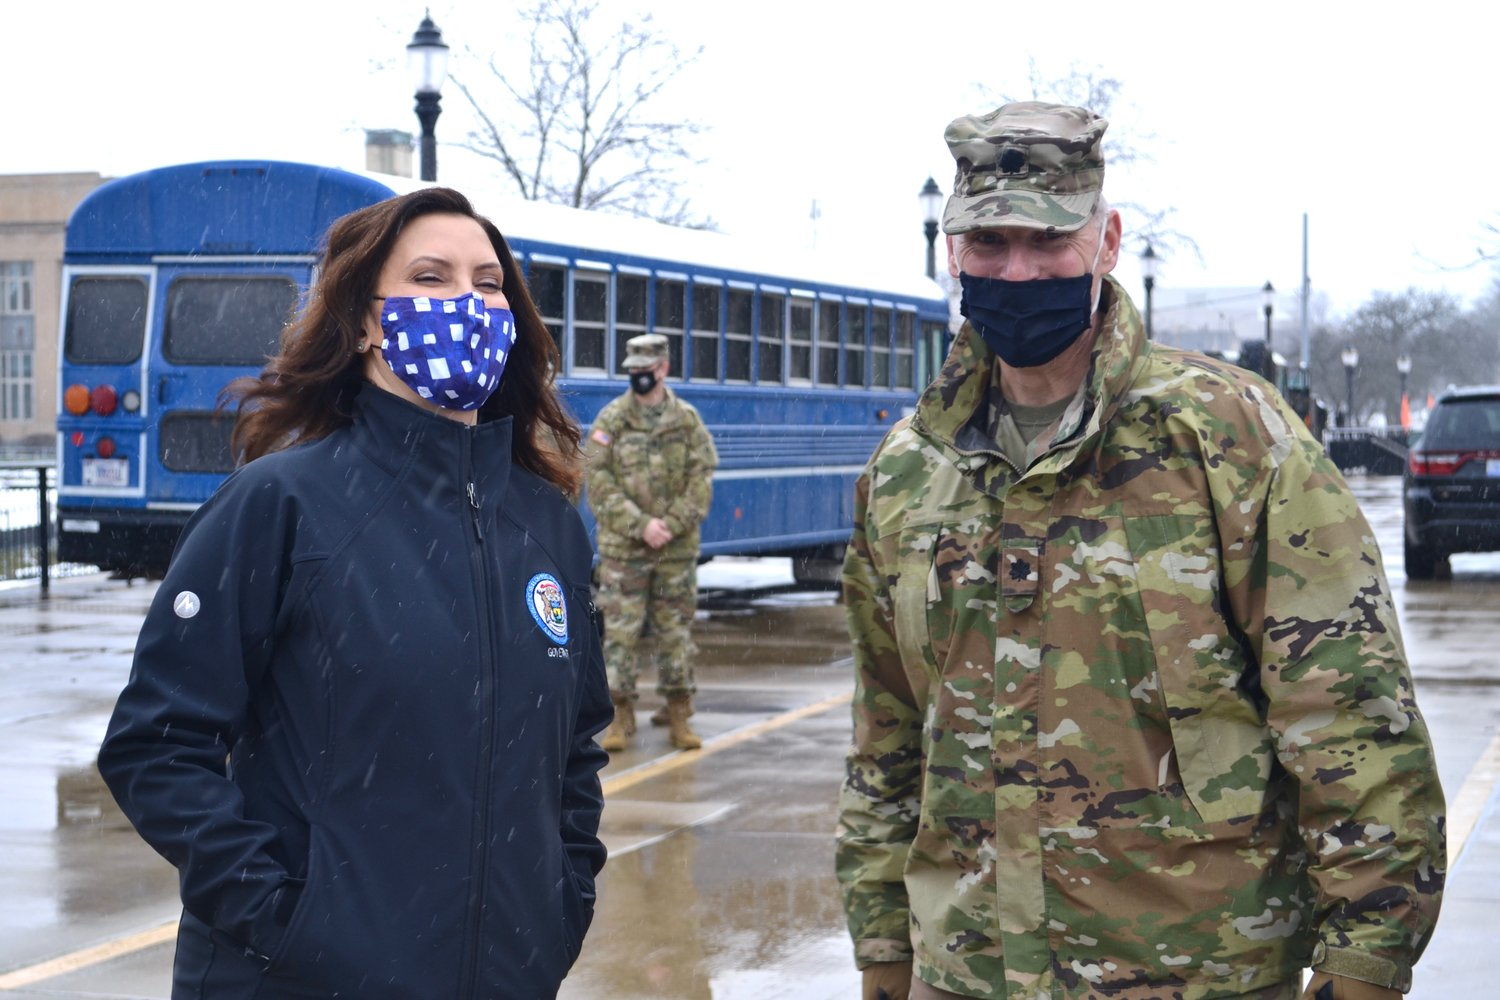 Gov. Gretchen Whitmer shares a laugh with a member of the National Guard.